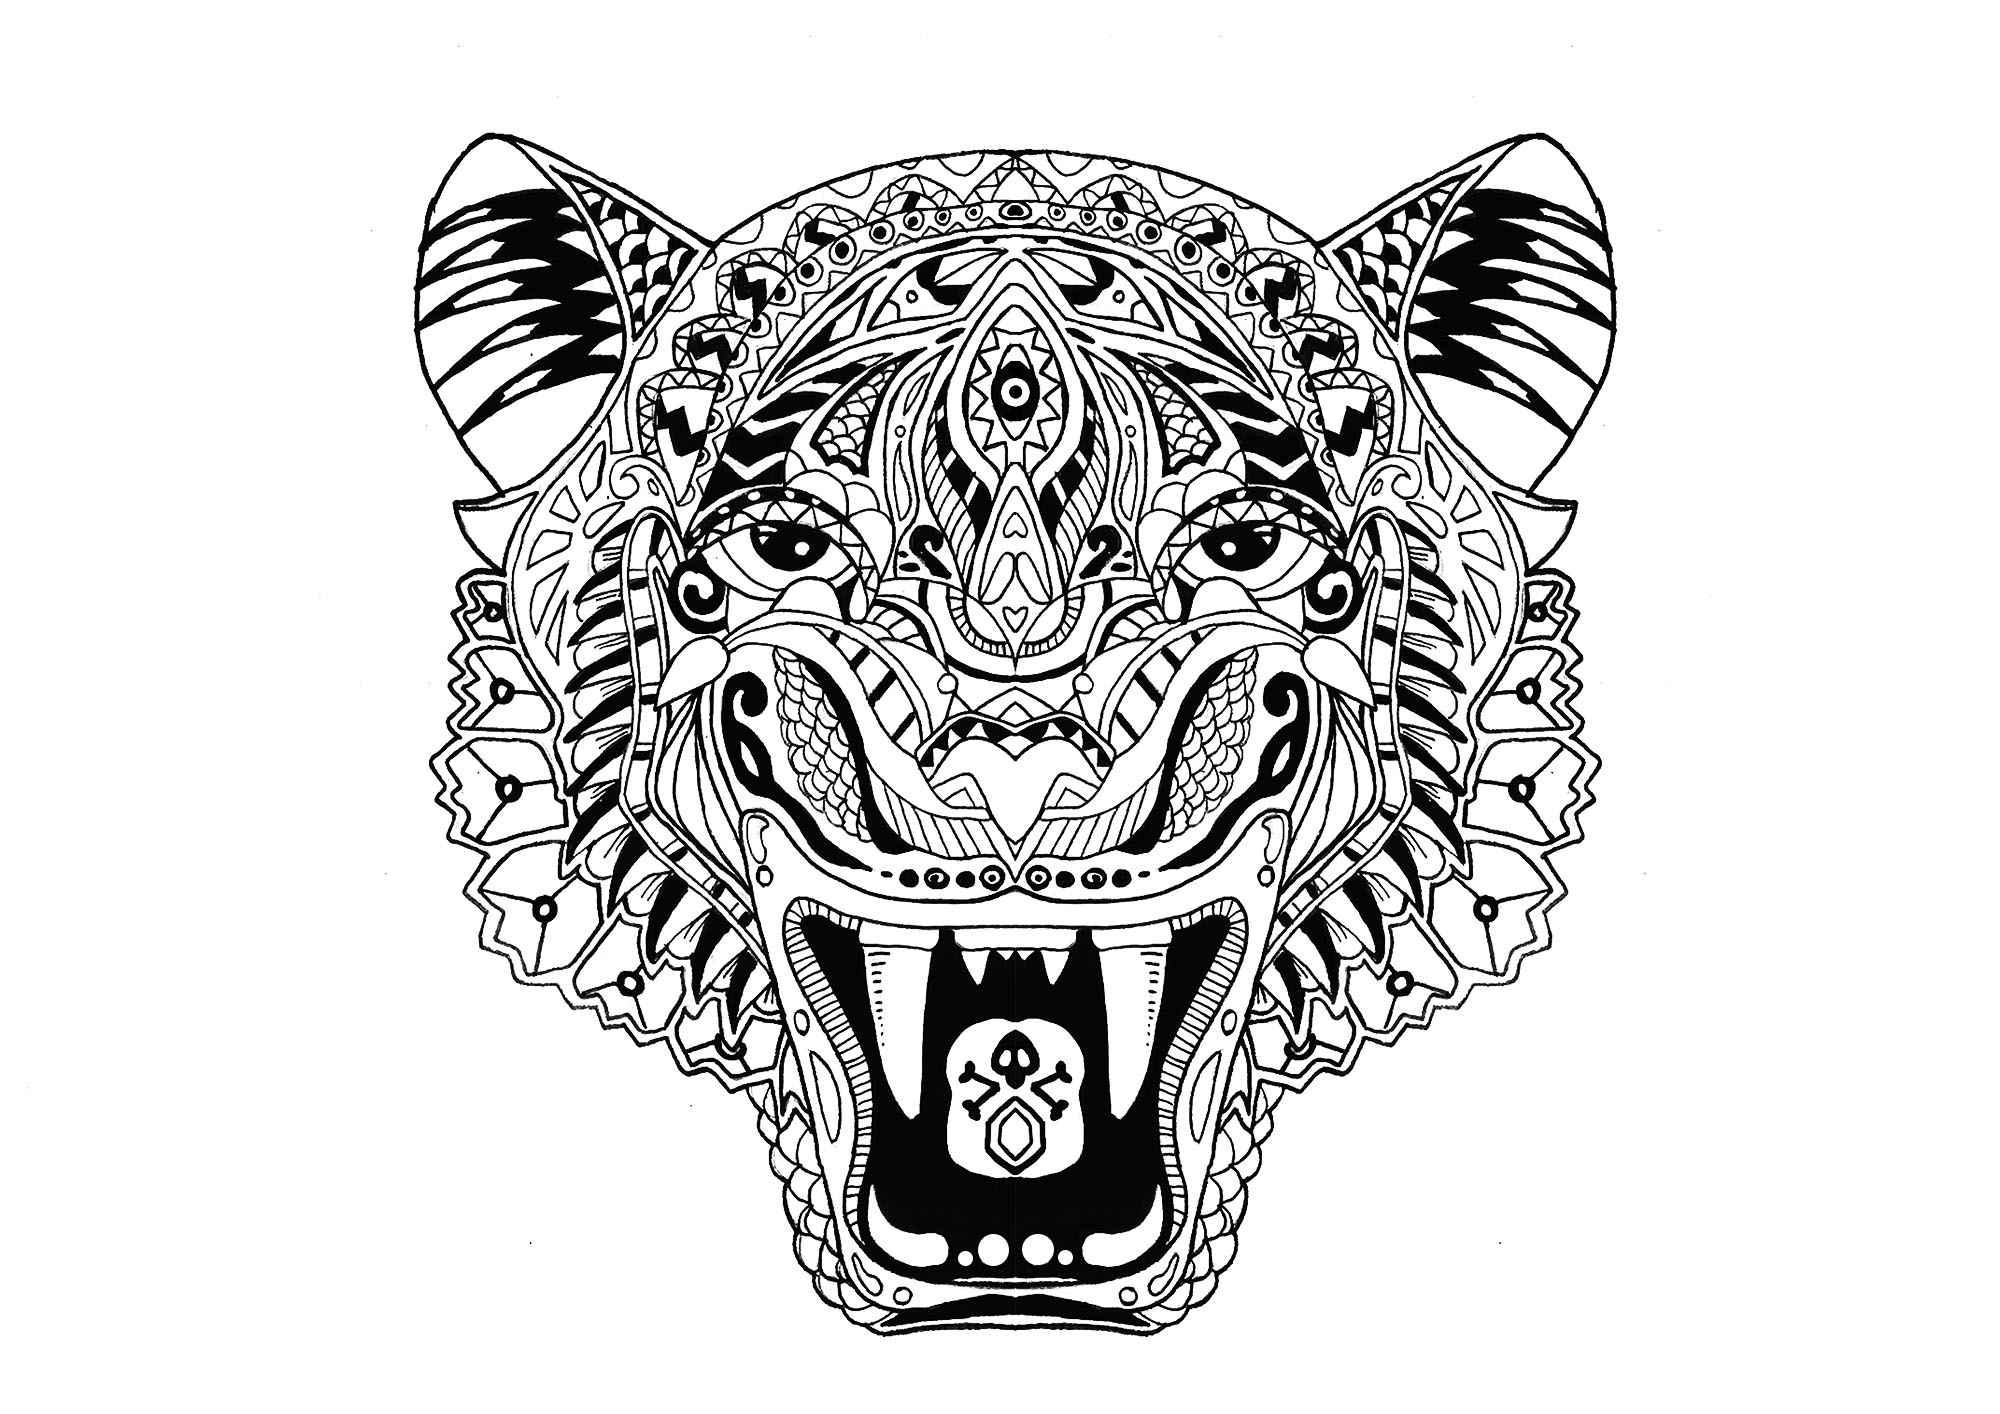 Tigre tigres coloriages difficiles pour adultes - Tigre a colorier ...